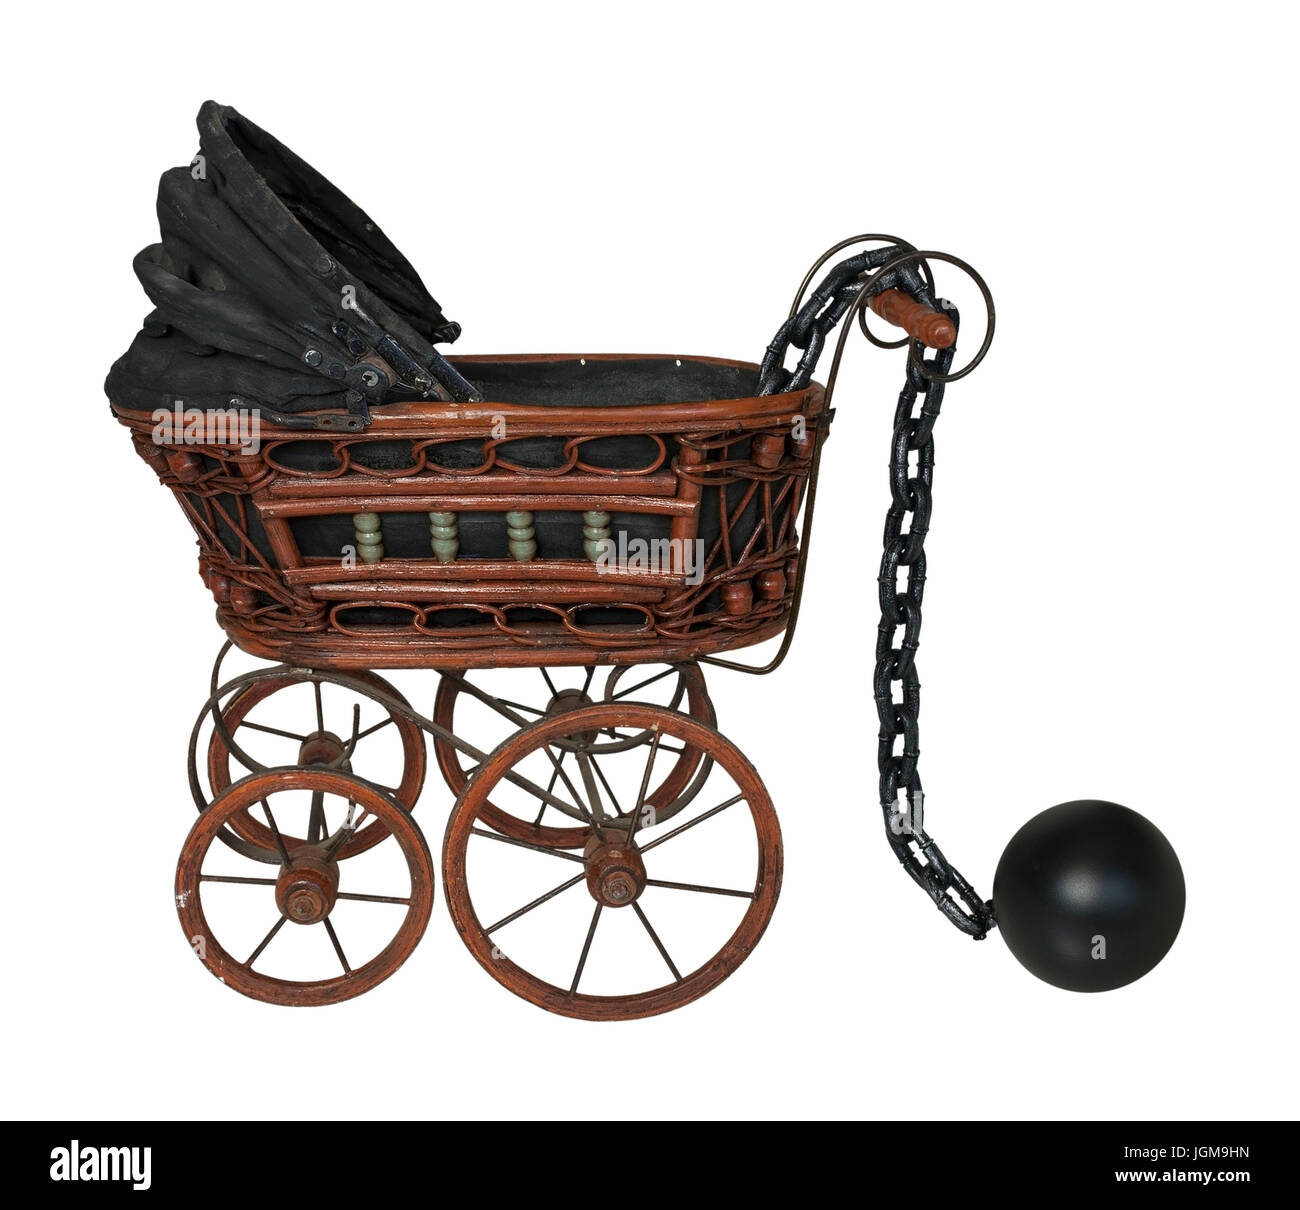 Large metal ball and chain with Bassinet - path included - Stock Image